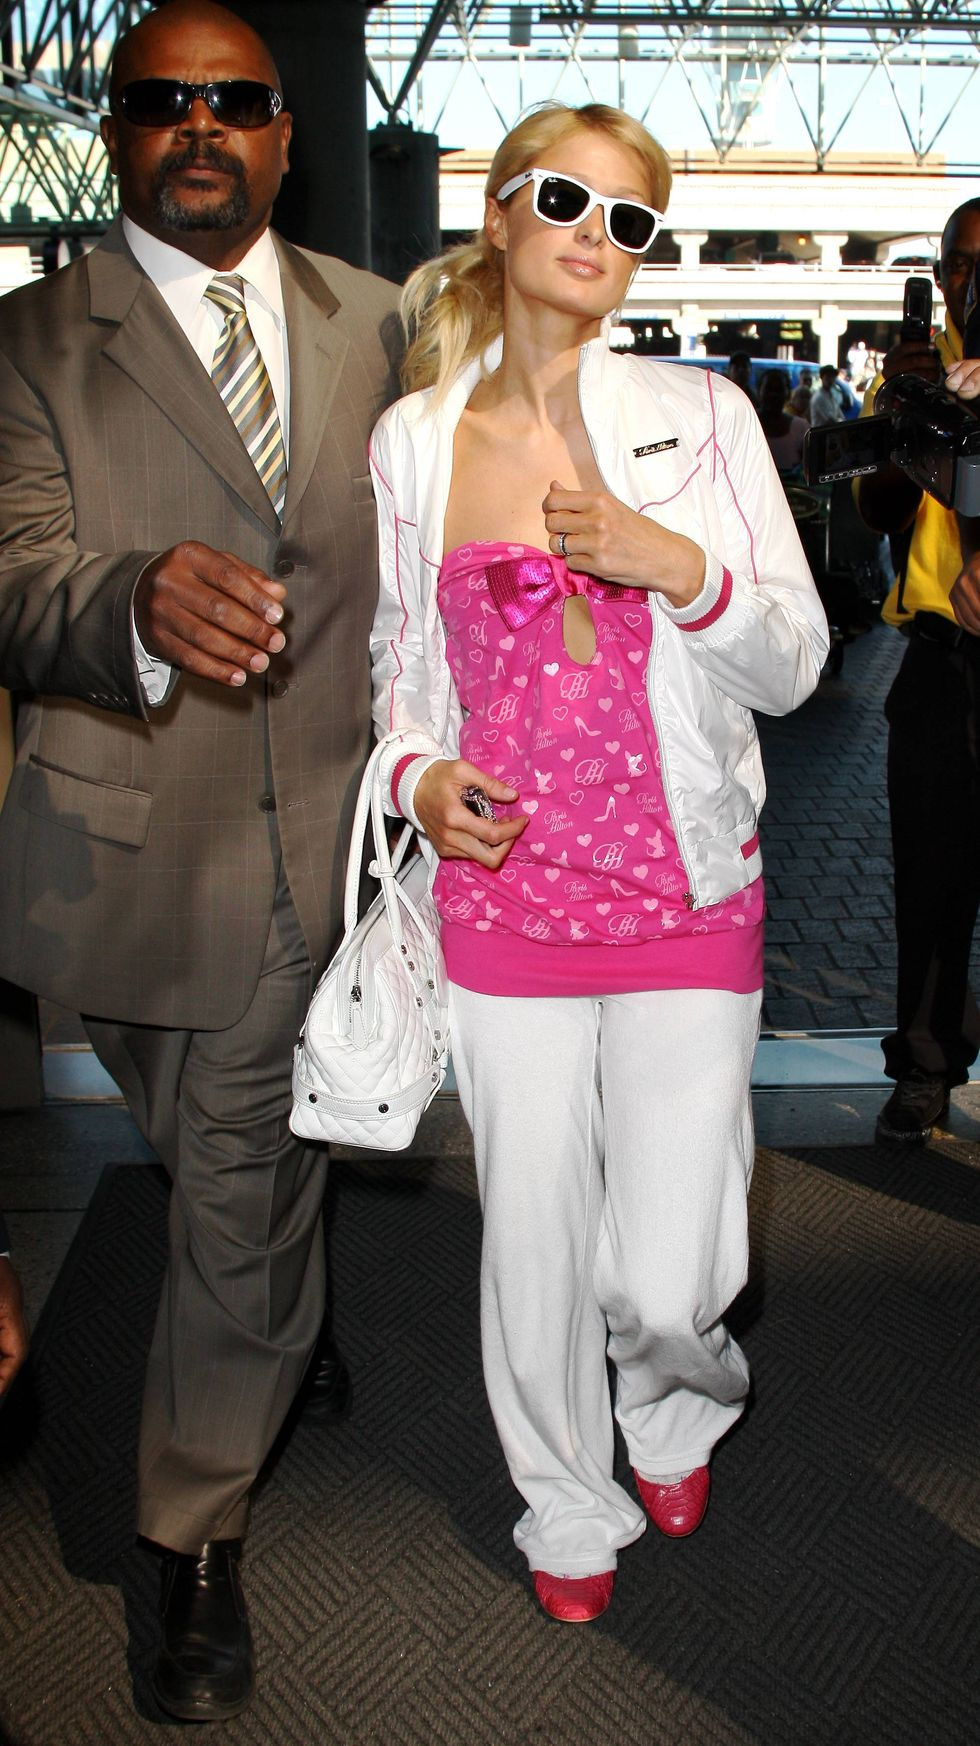 paris-hilton-candids-at-lax-airport-in-los-angeles-01